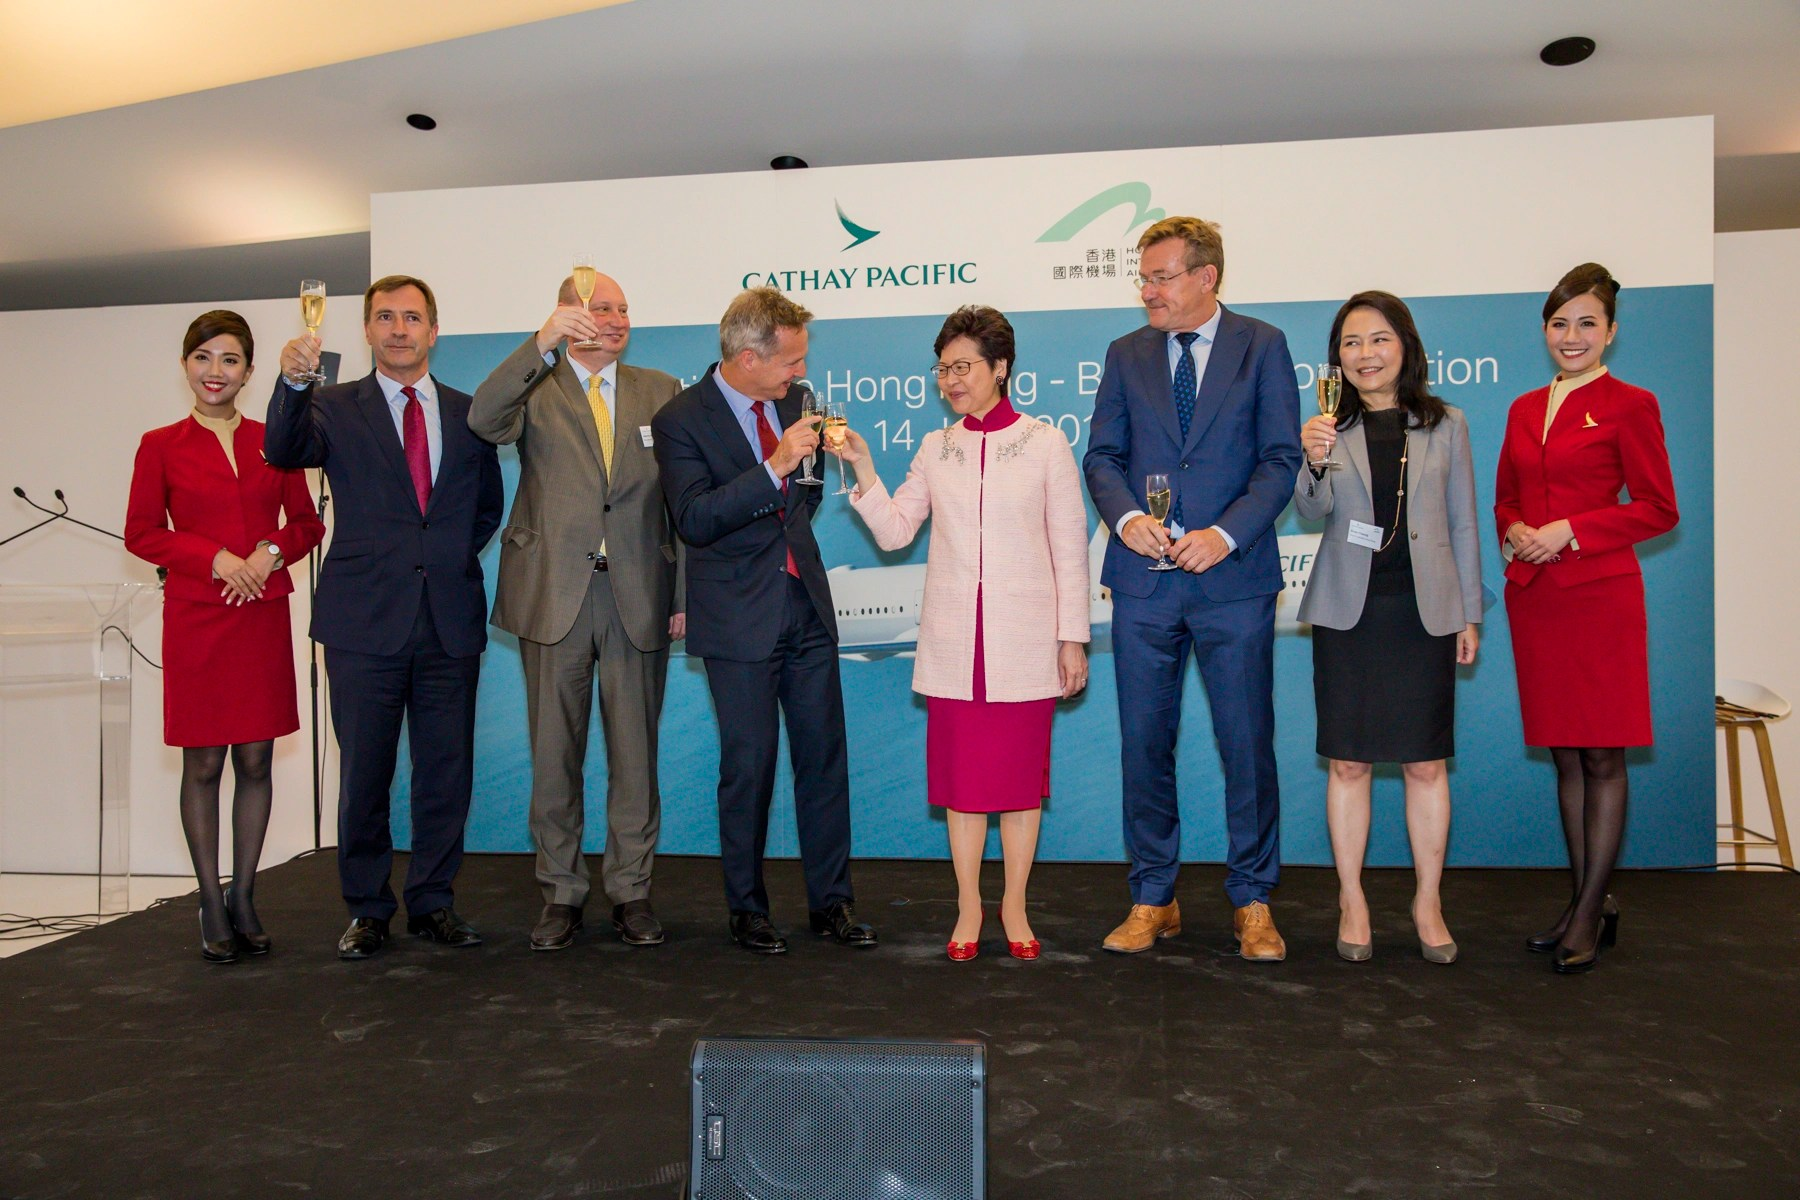 Cathay Pacific celebrates Hong Kong – Brussels connection - Cathay Pacific